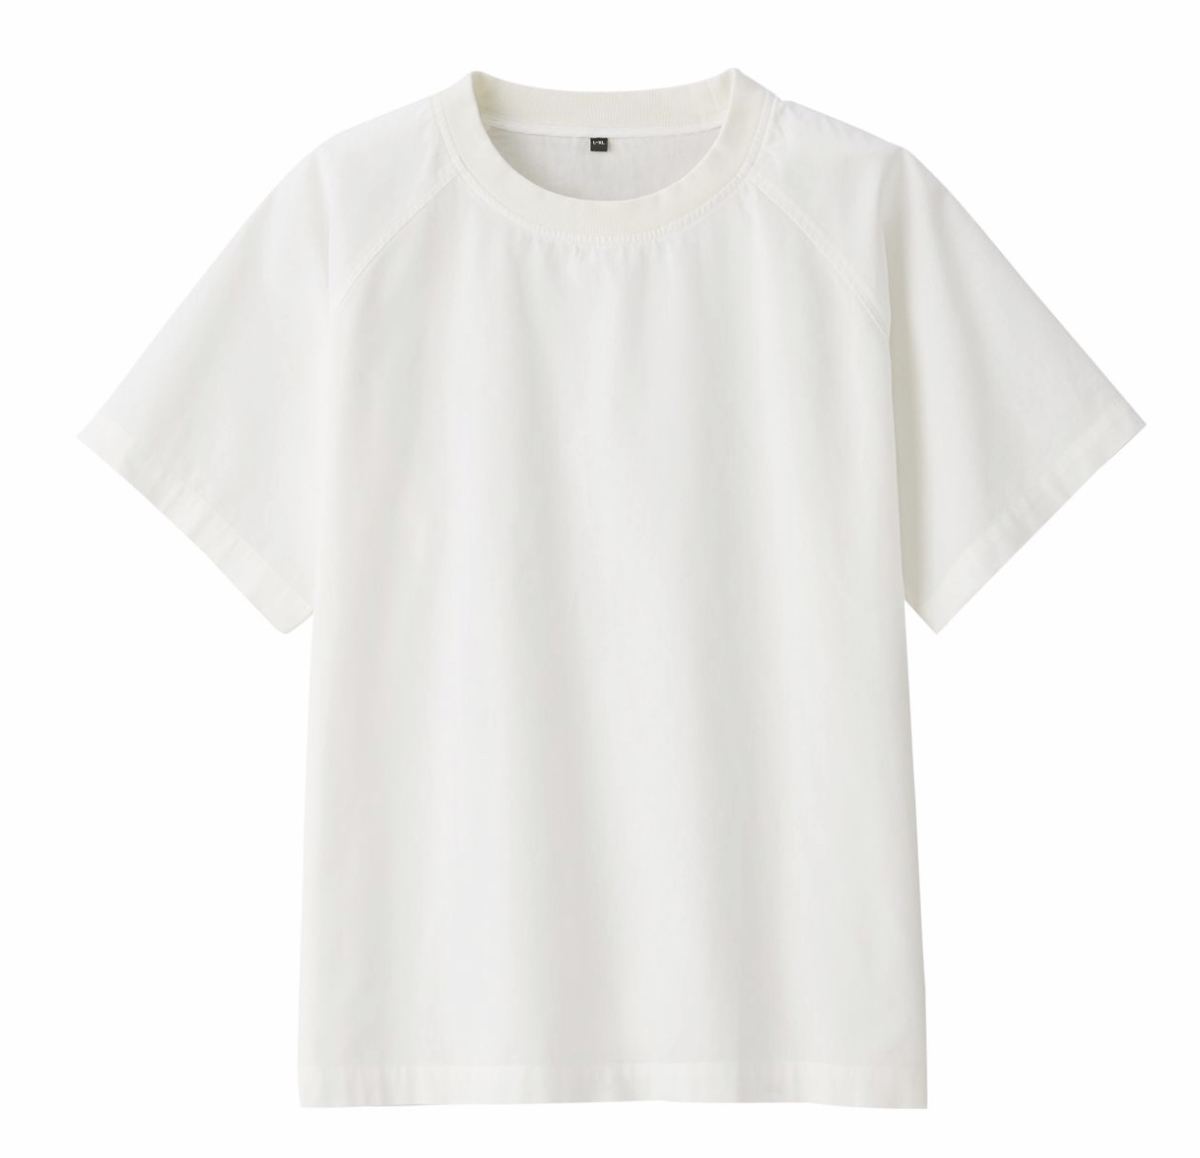 f:id:fortheshirt:20190603115635j:plain